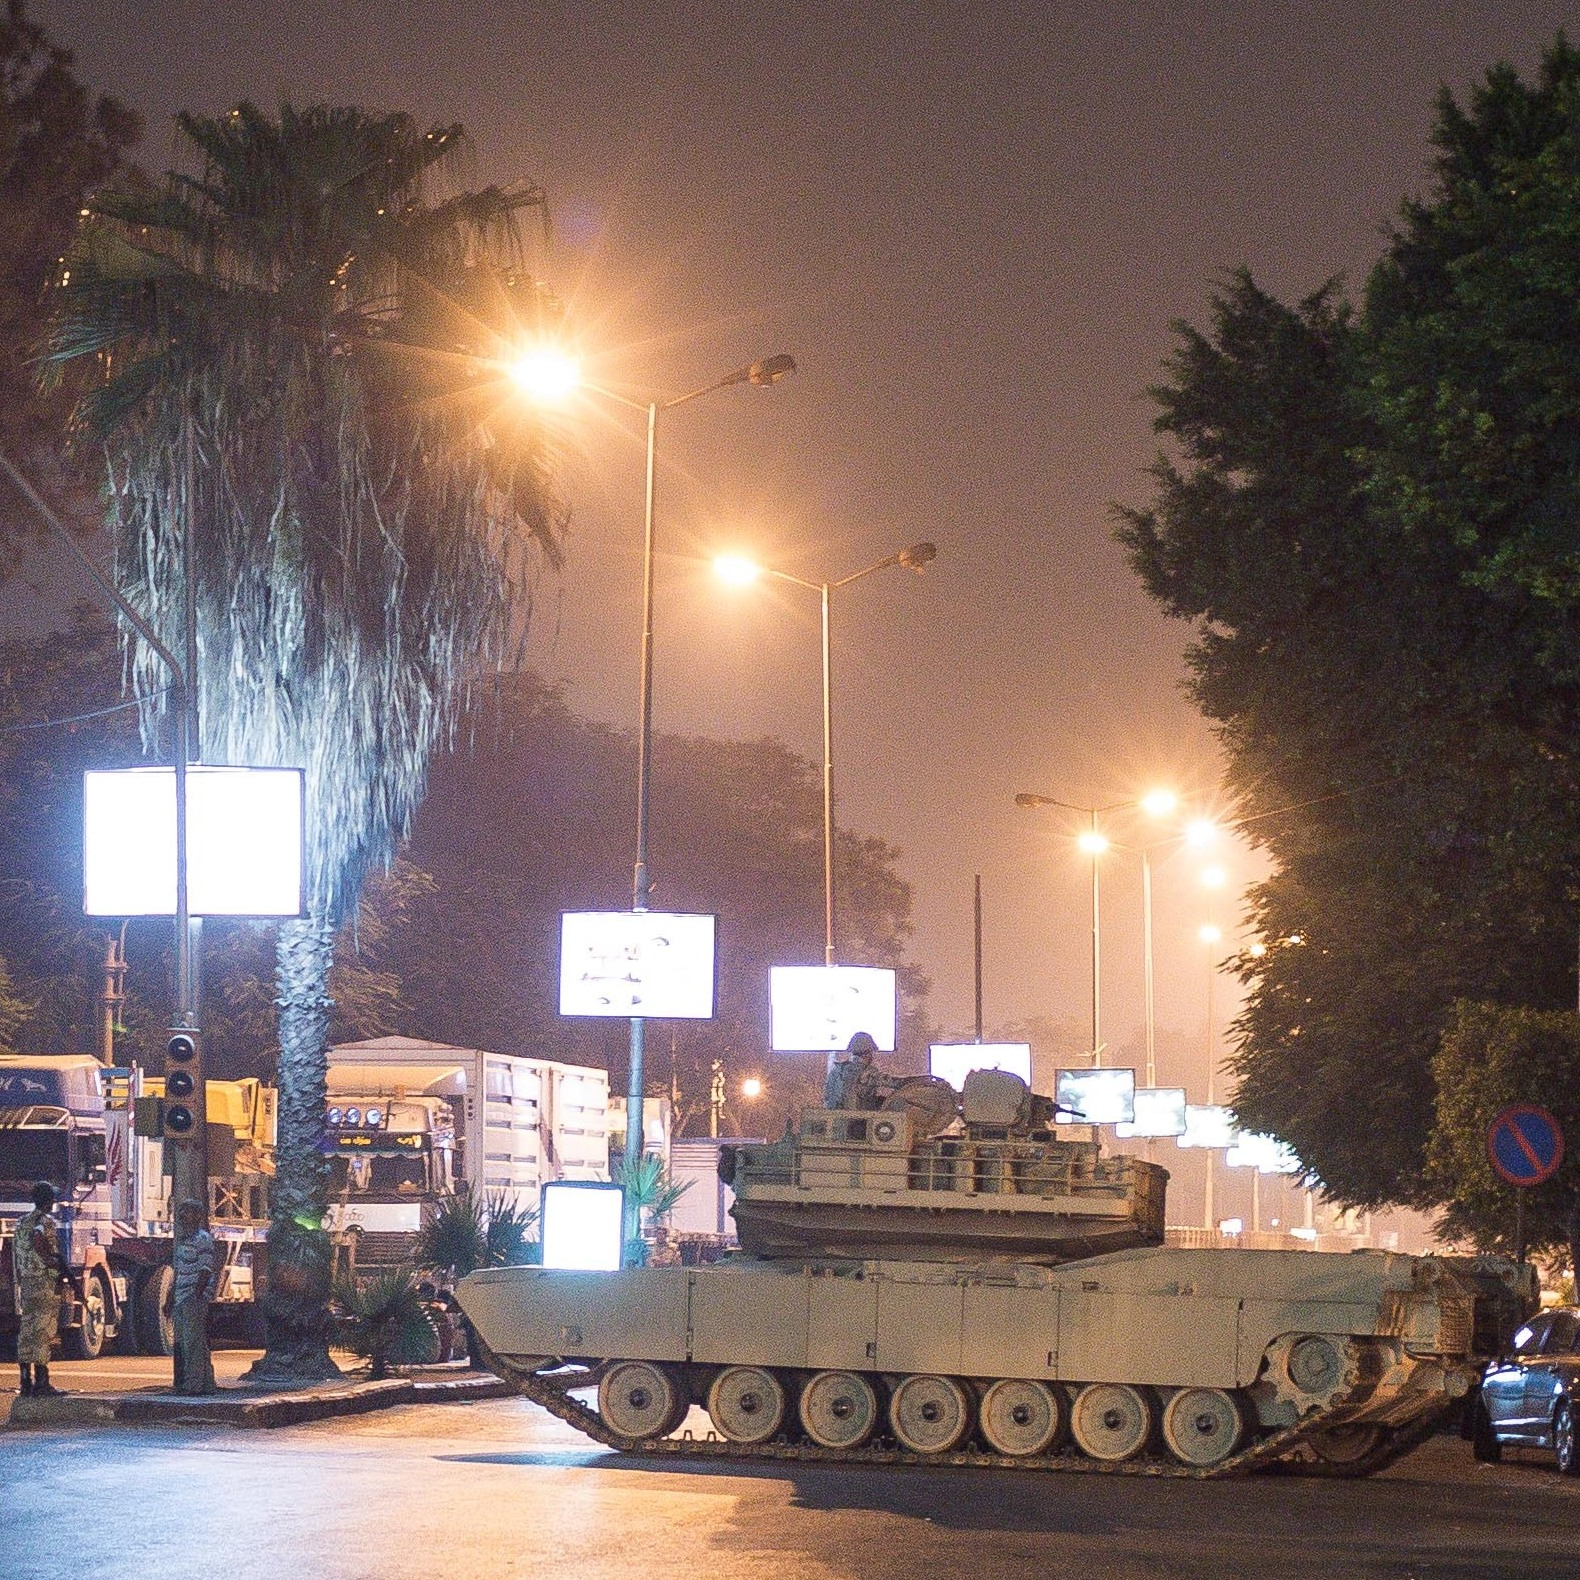 Two Egyptian army tank block a street during the first day of curfew in Cairo, Egypt on Wednesday. Egyptian police in riot gear swept in with armored vehicles and bulldozers to clear two encampments of Morsi supporters.